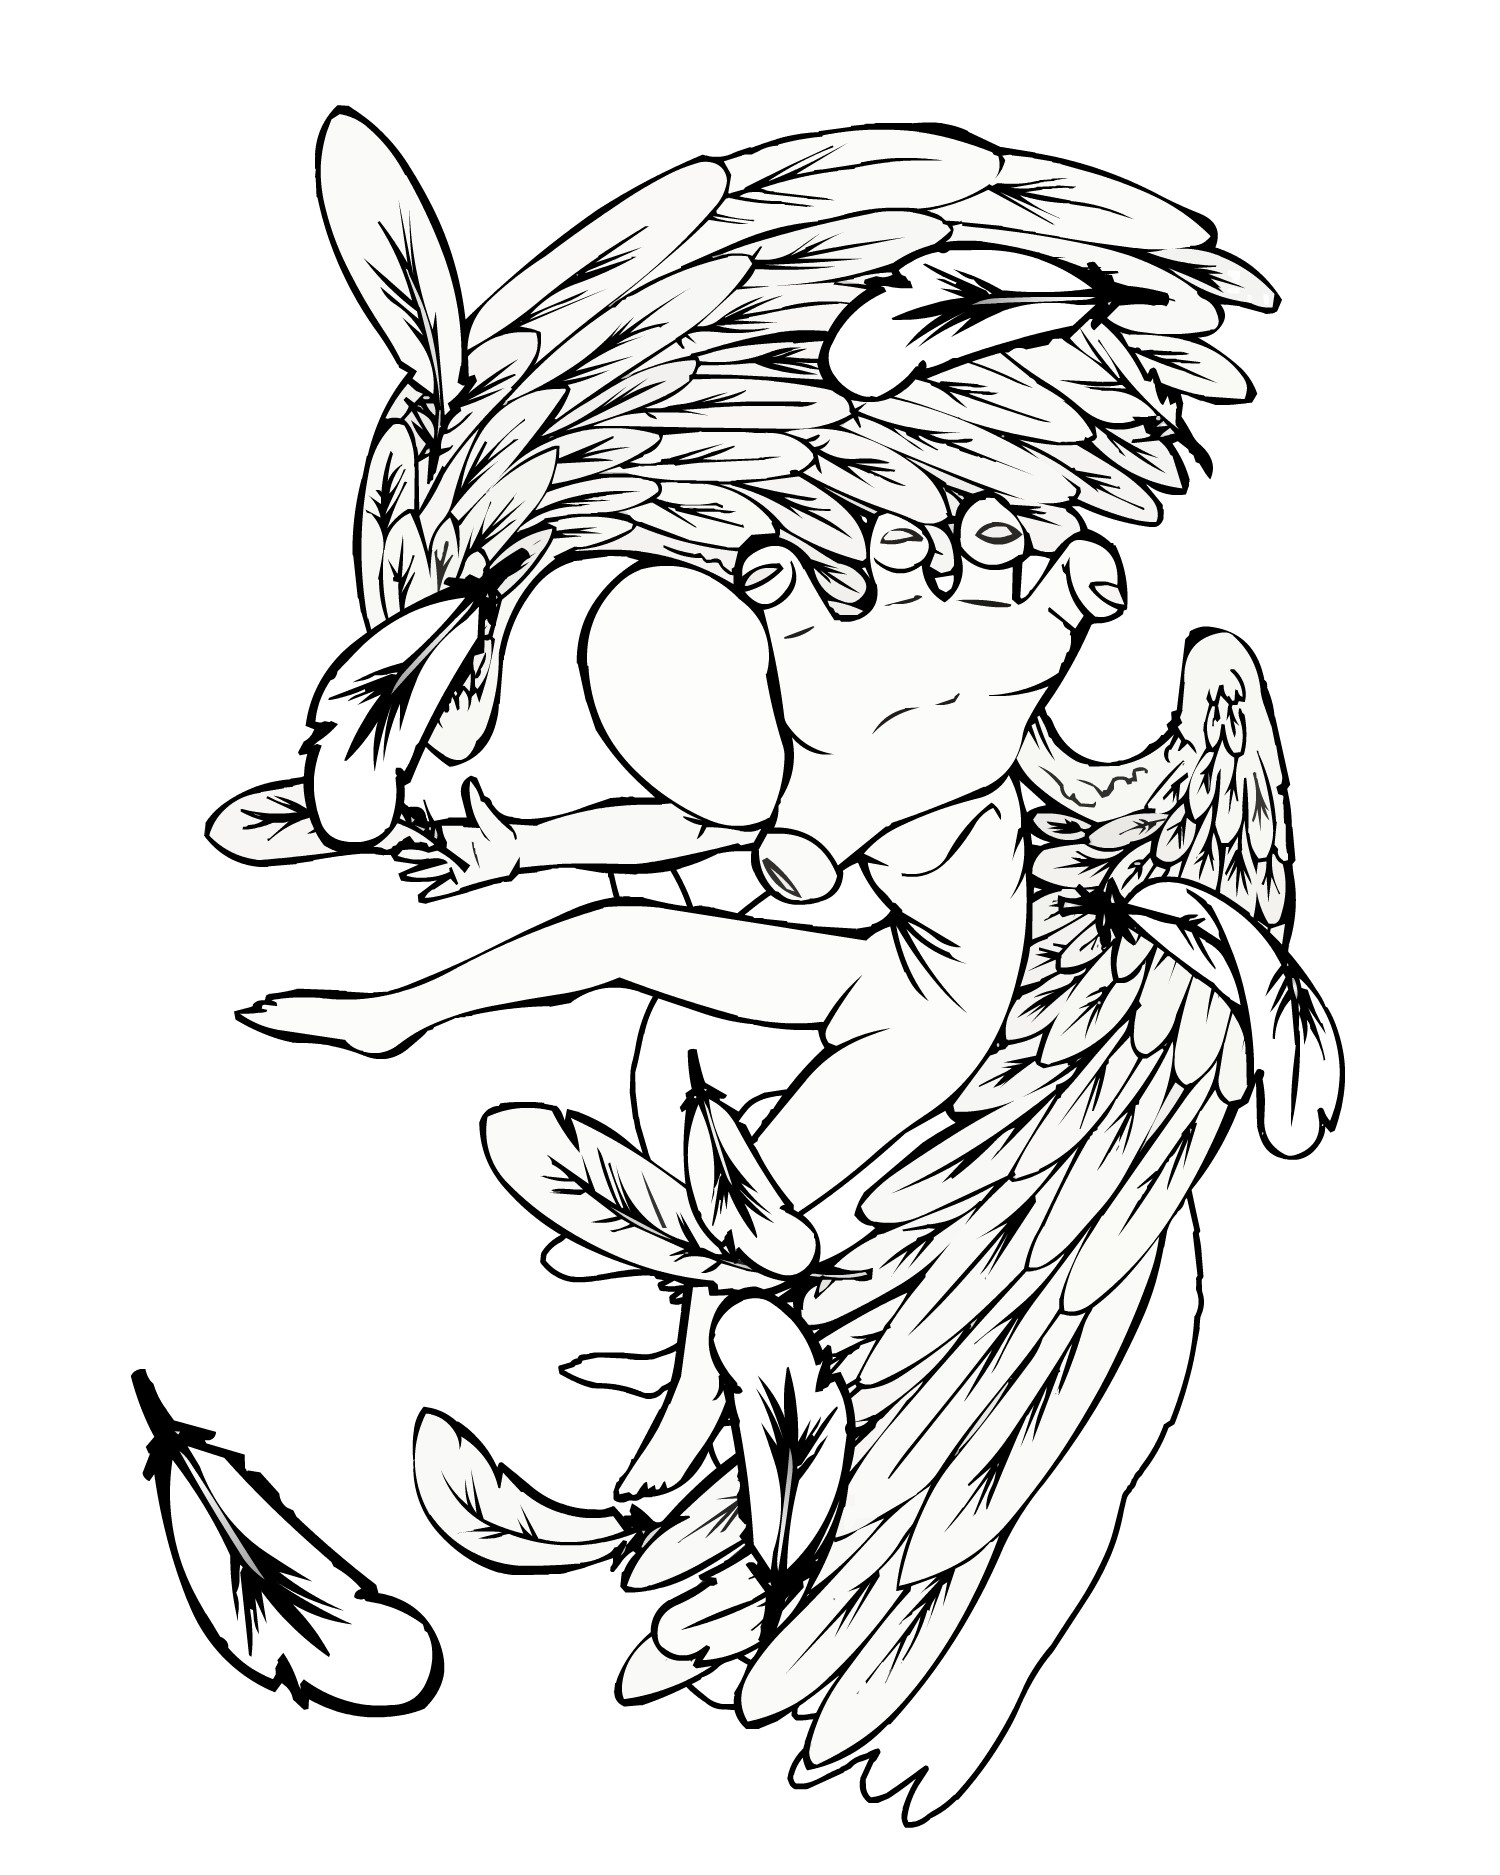 Free skull tattoo designs to print - Baby Tattoo Angel Designs Photo 1